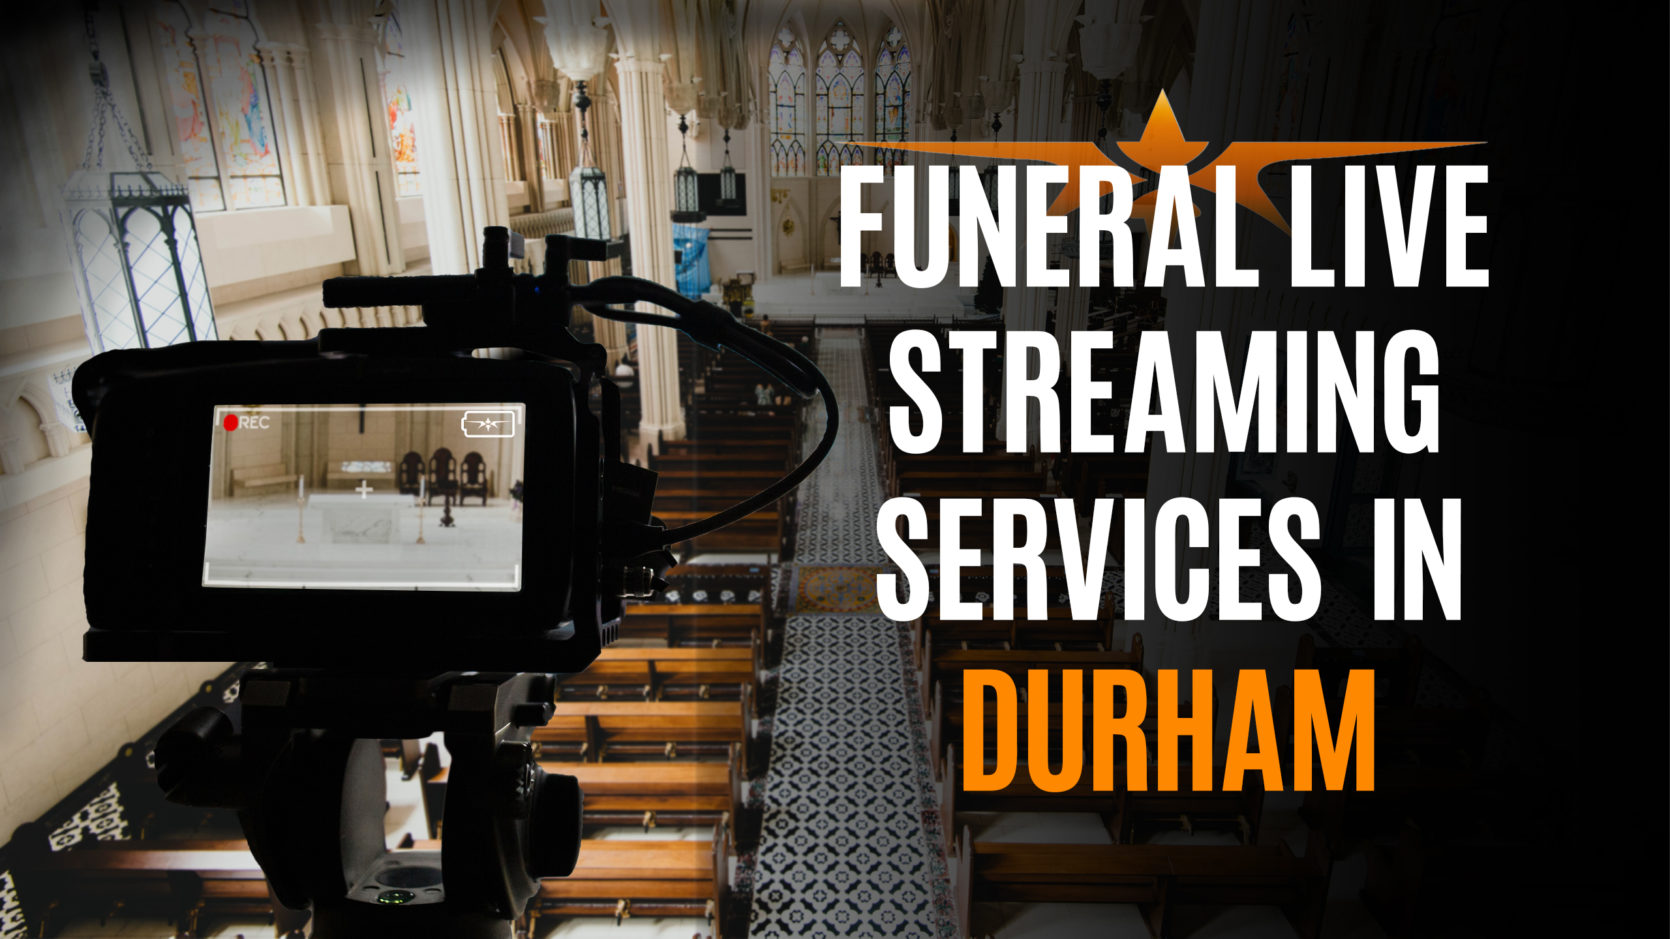 Funeral Live Streaming Services in Durham